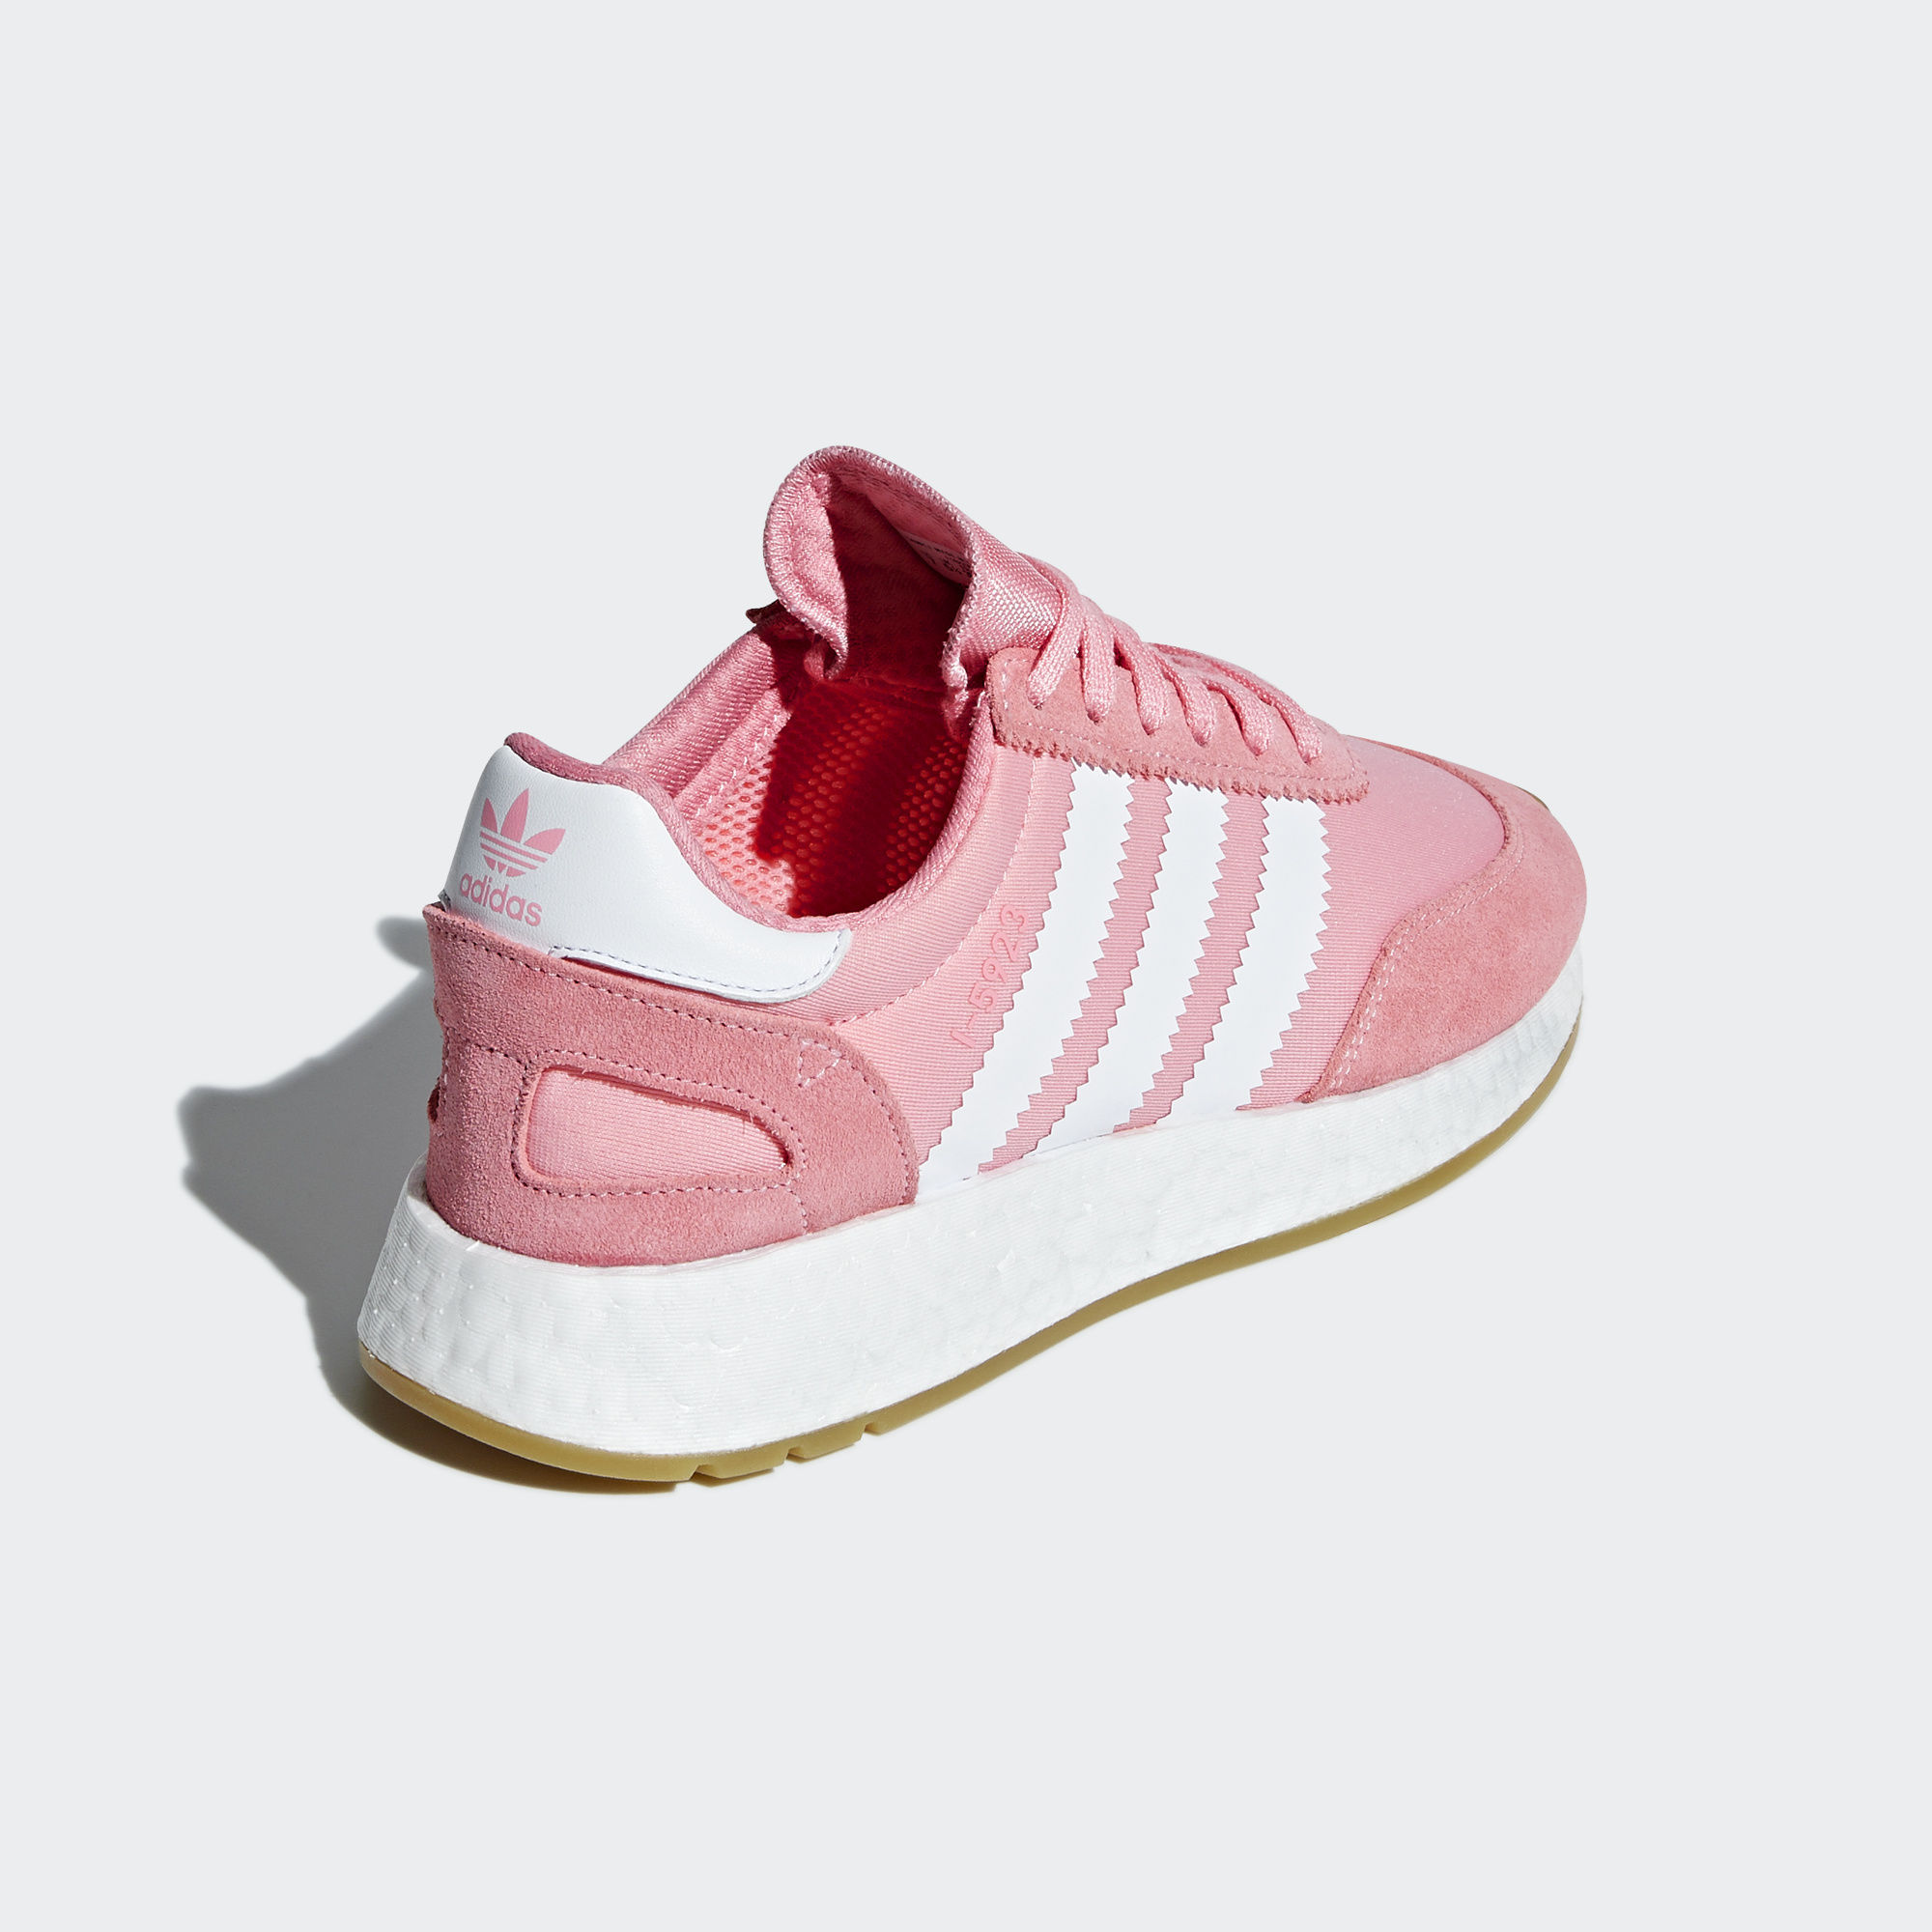 Adidas Originals I-5923 Super Pop / Ftwr White / Gum 3 (B37971)